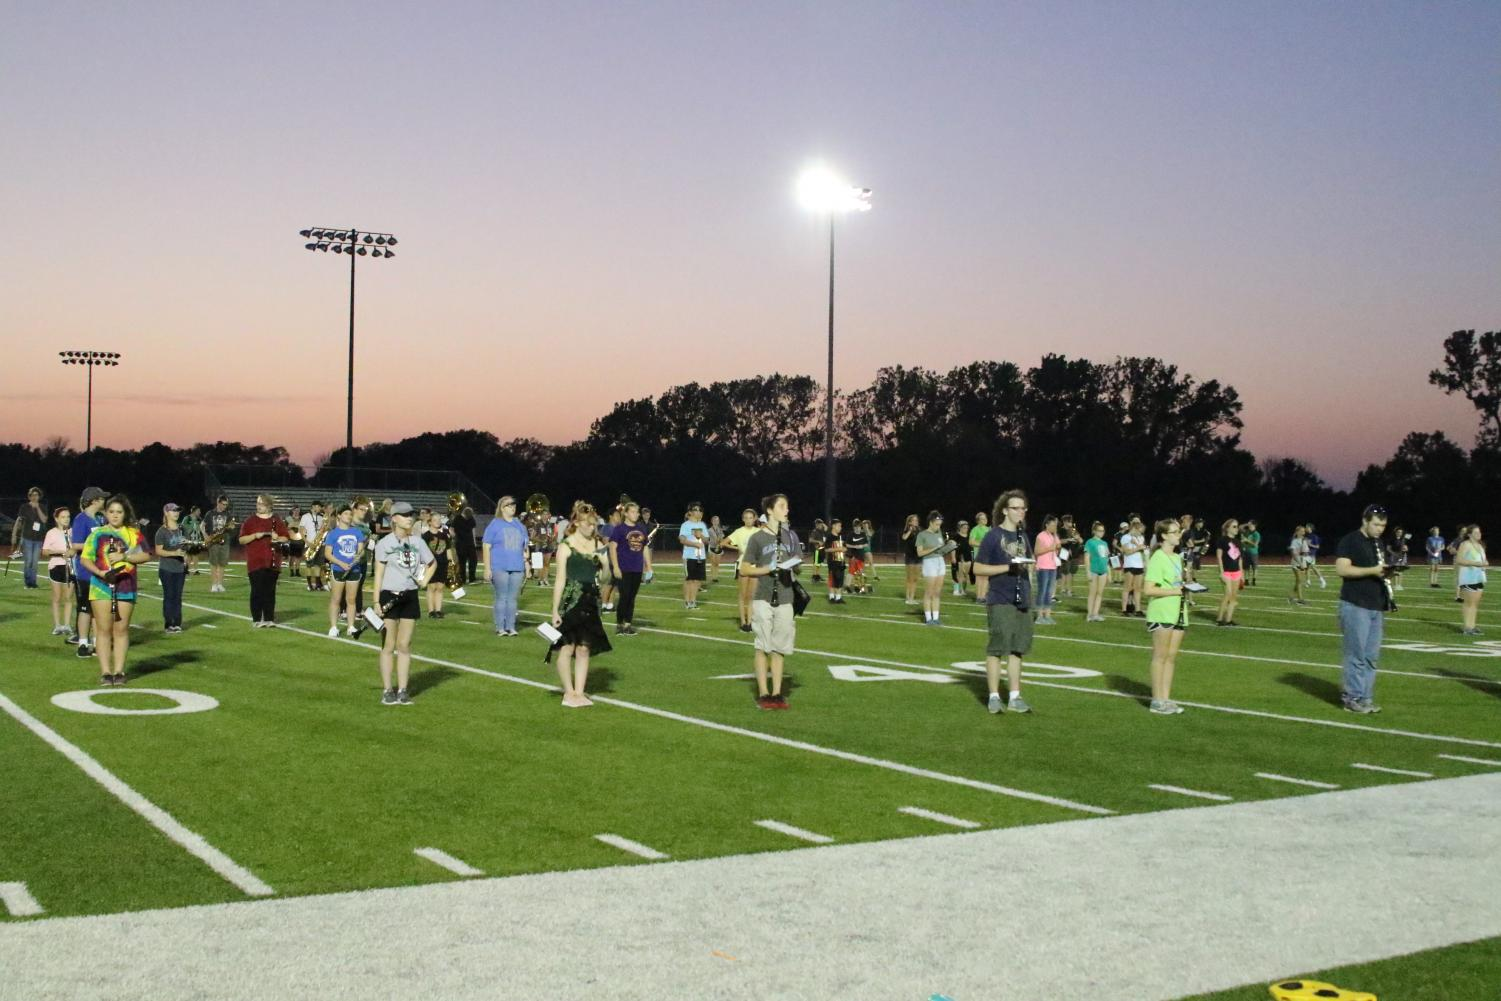 The DHS Marching Wildcats practice their performance on August 27, 2018.